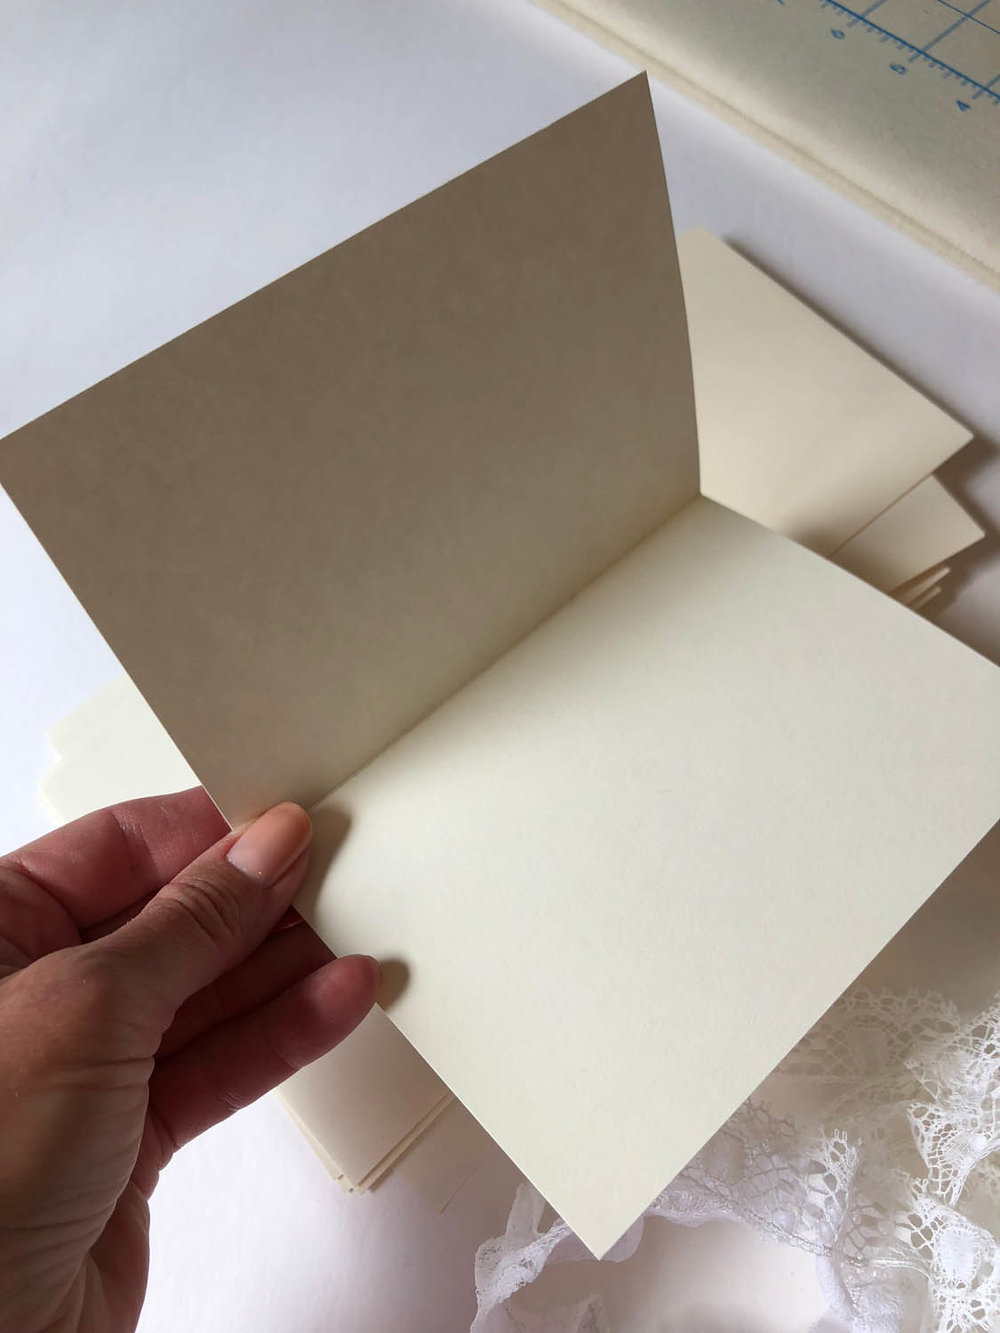 purchased blank card stock